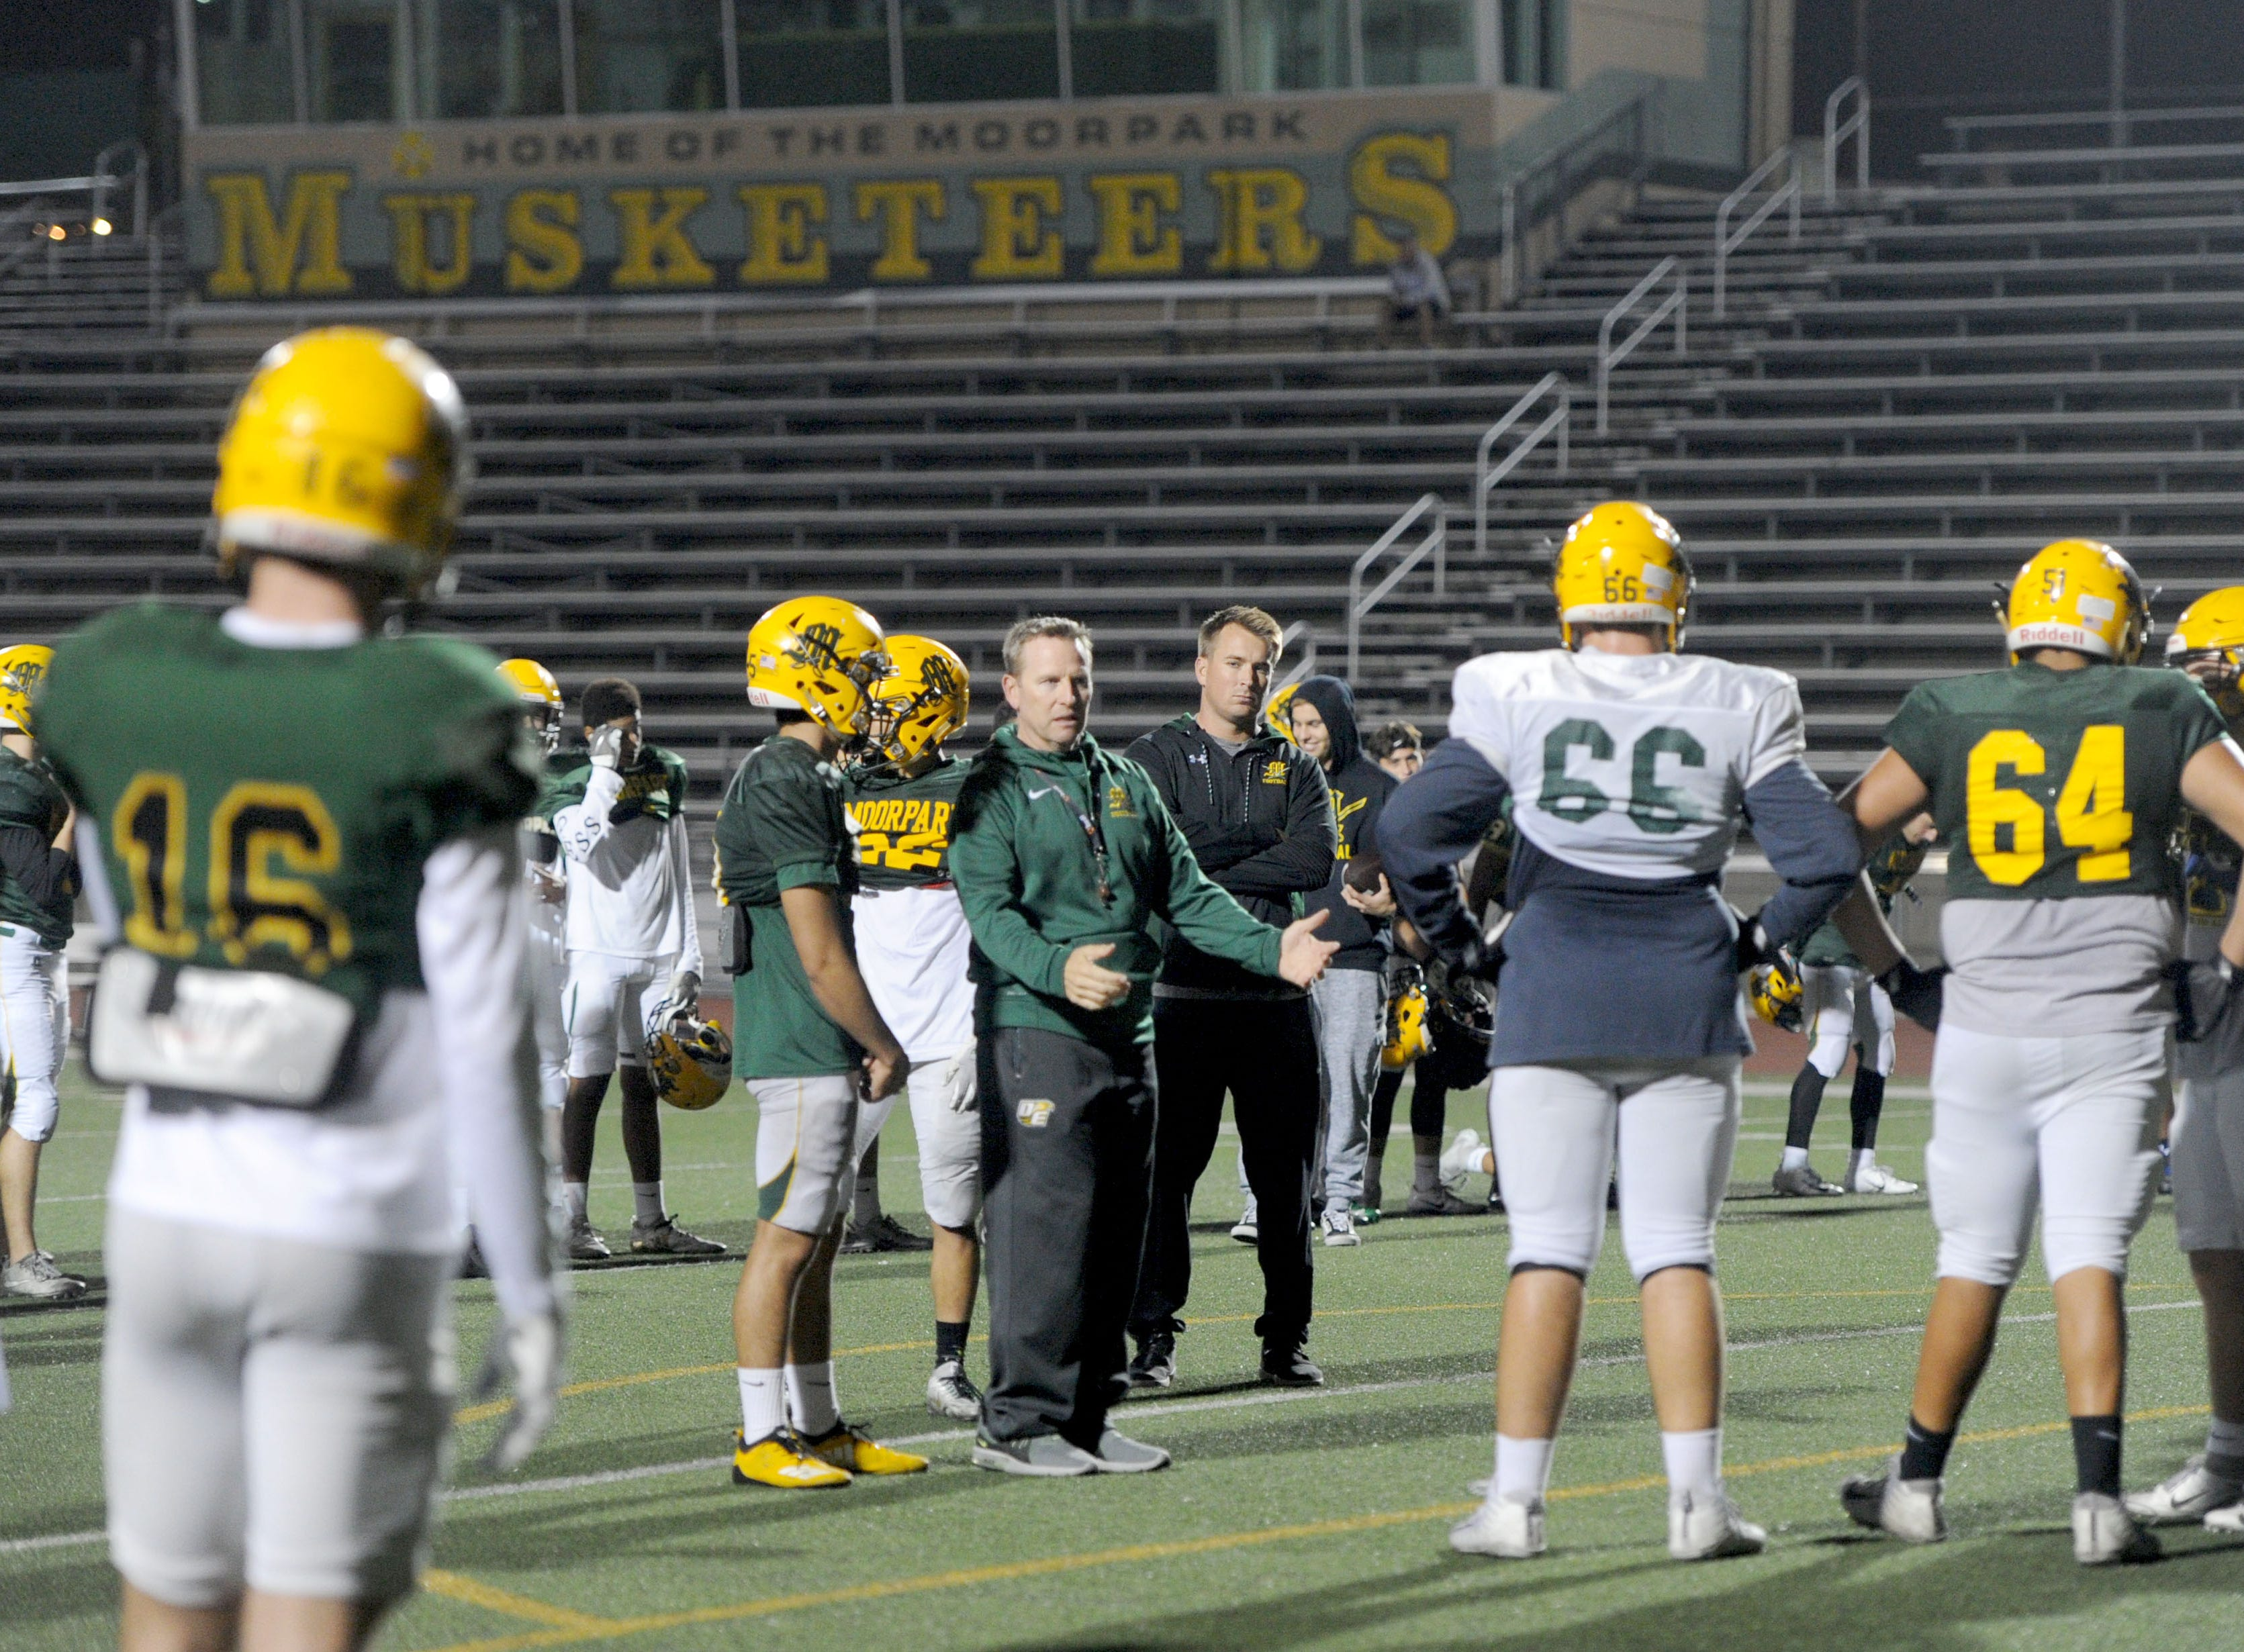 Head coach Ryan Huisenga takes a moment for instruction during Moorpark's practice Wednesday. The Musketeers host Sierra Canyon in a Division 3 quarterfinal game Friday night.